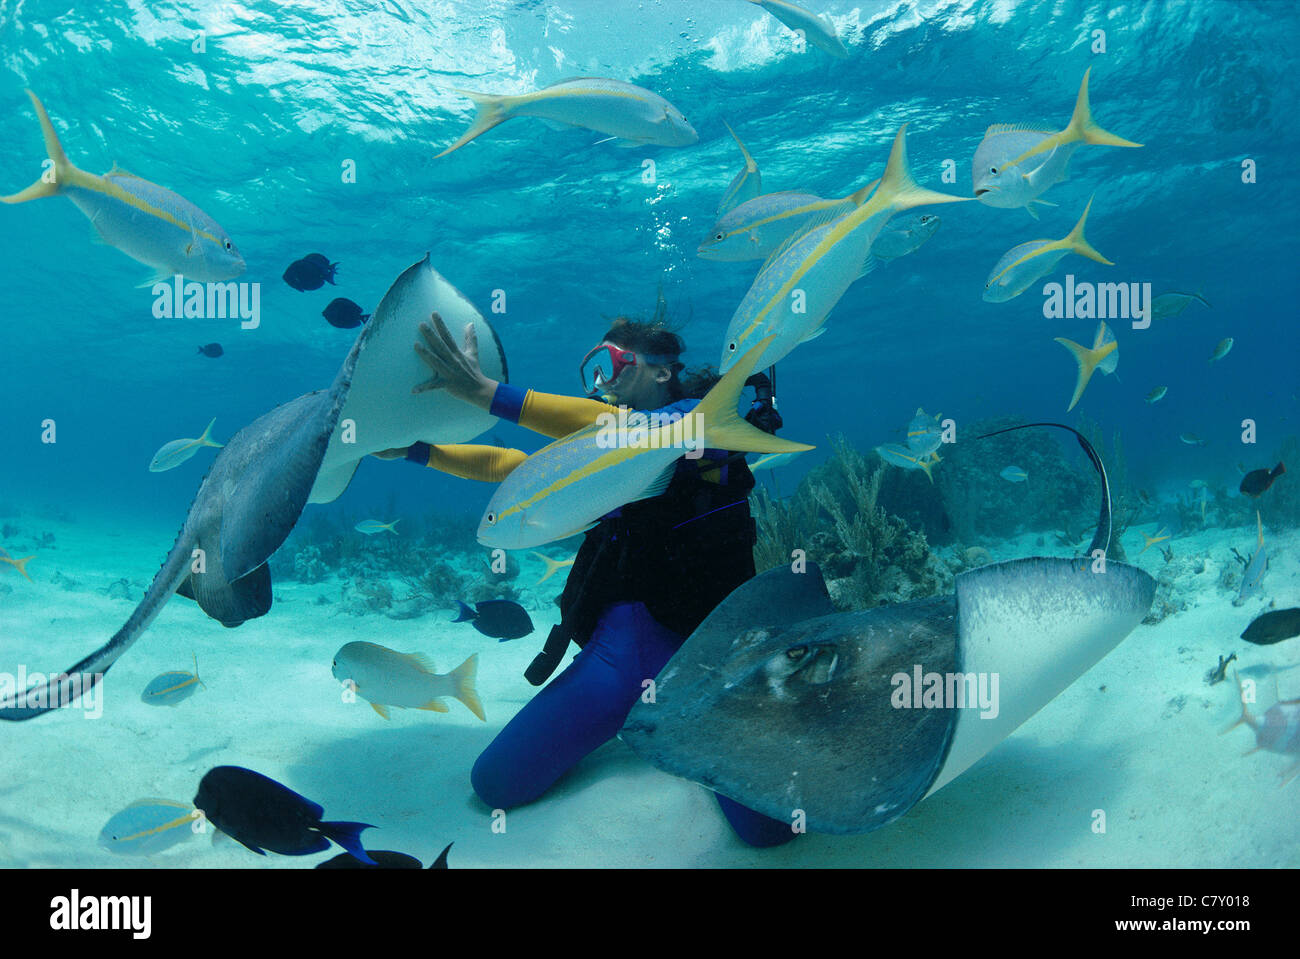 Diver interacts with Southern Stingrays (Dasyastis americana),'Stingray City', Bahamas - Caribbean Sea - Stock Image